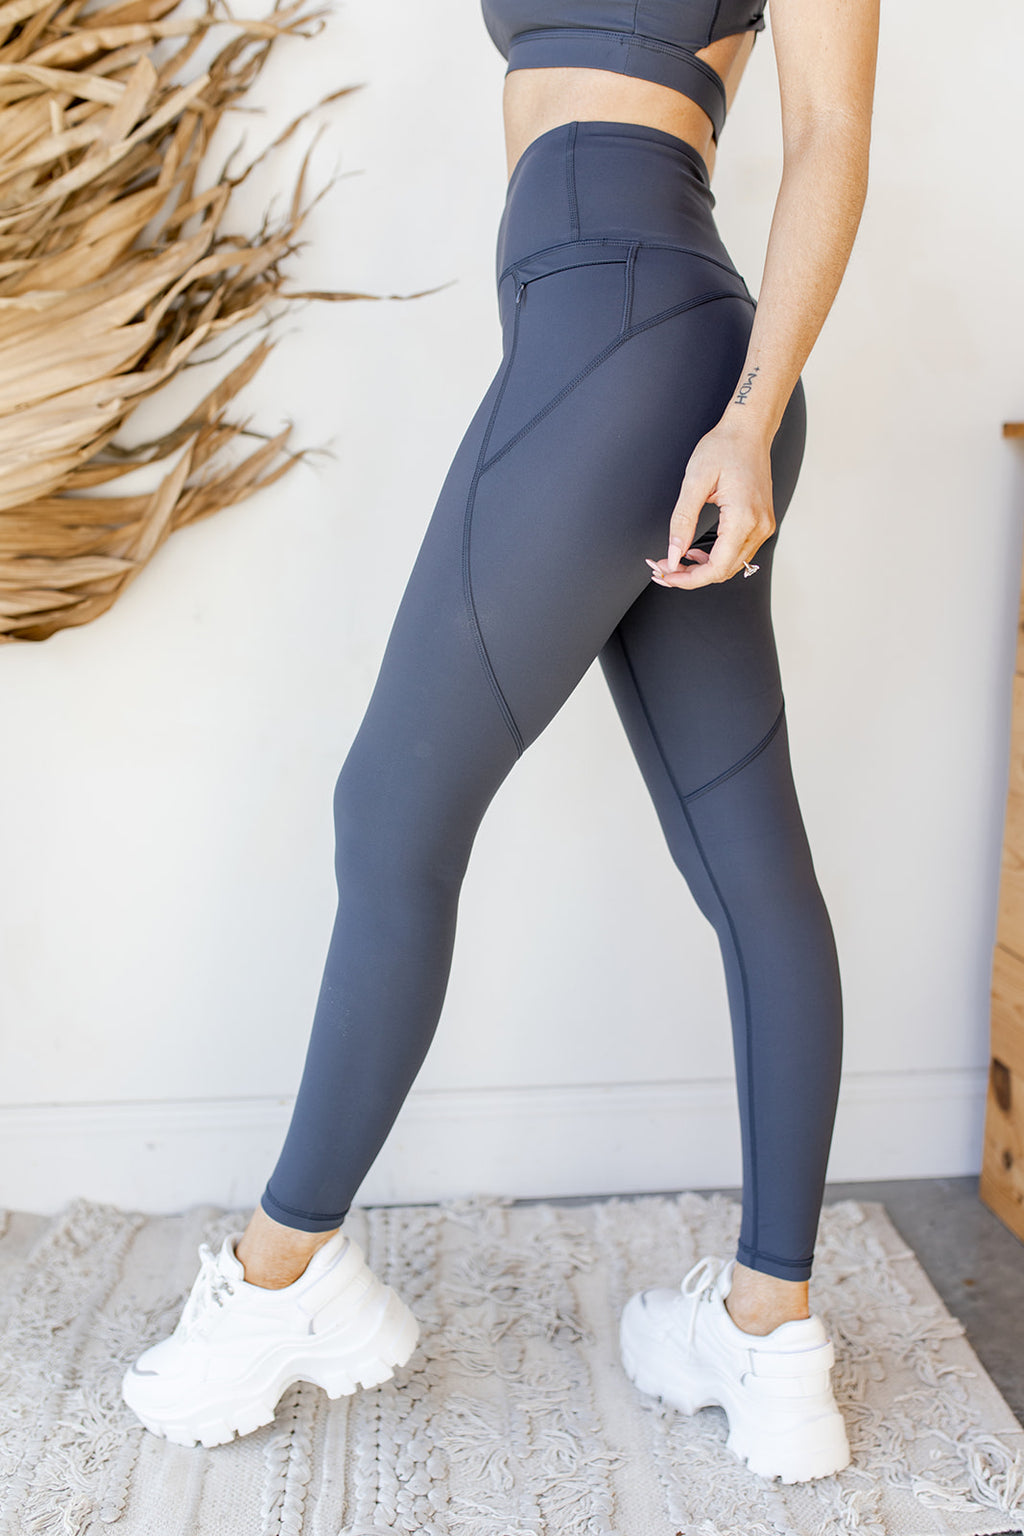 lycra-blend highwaist leggings